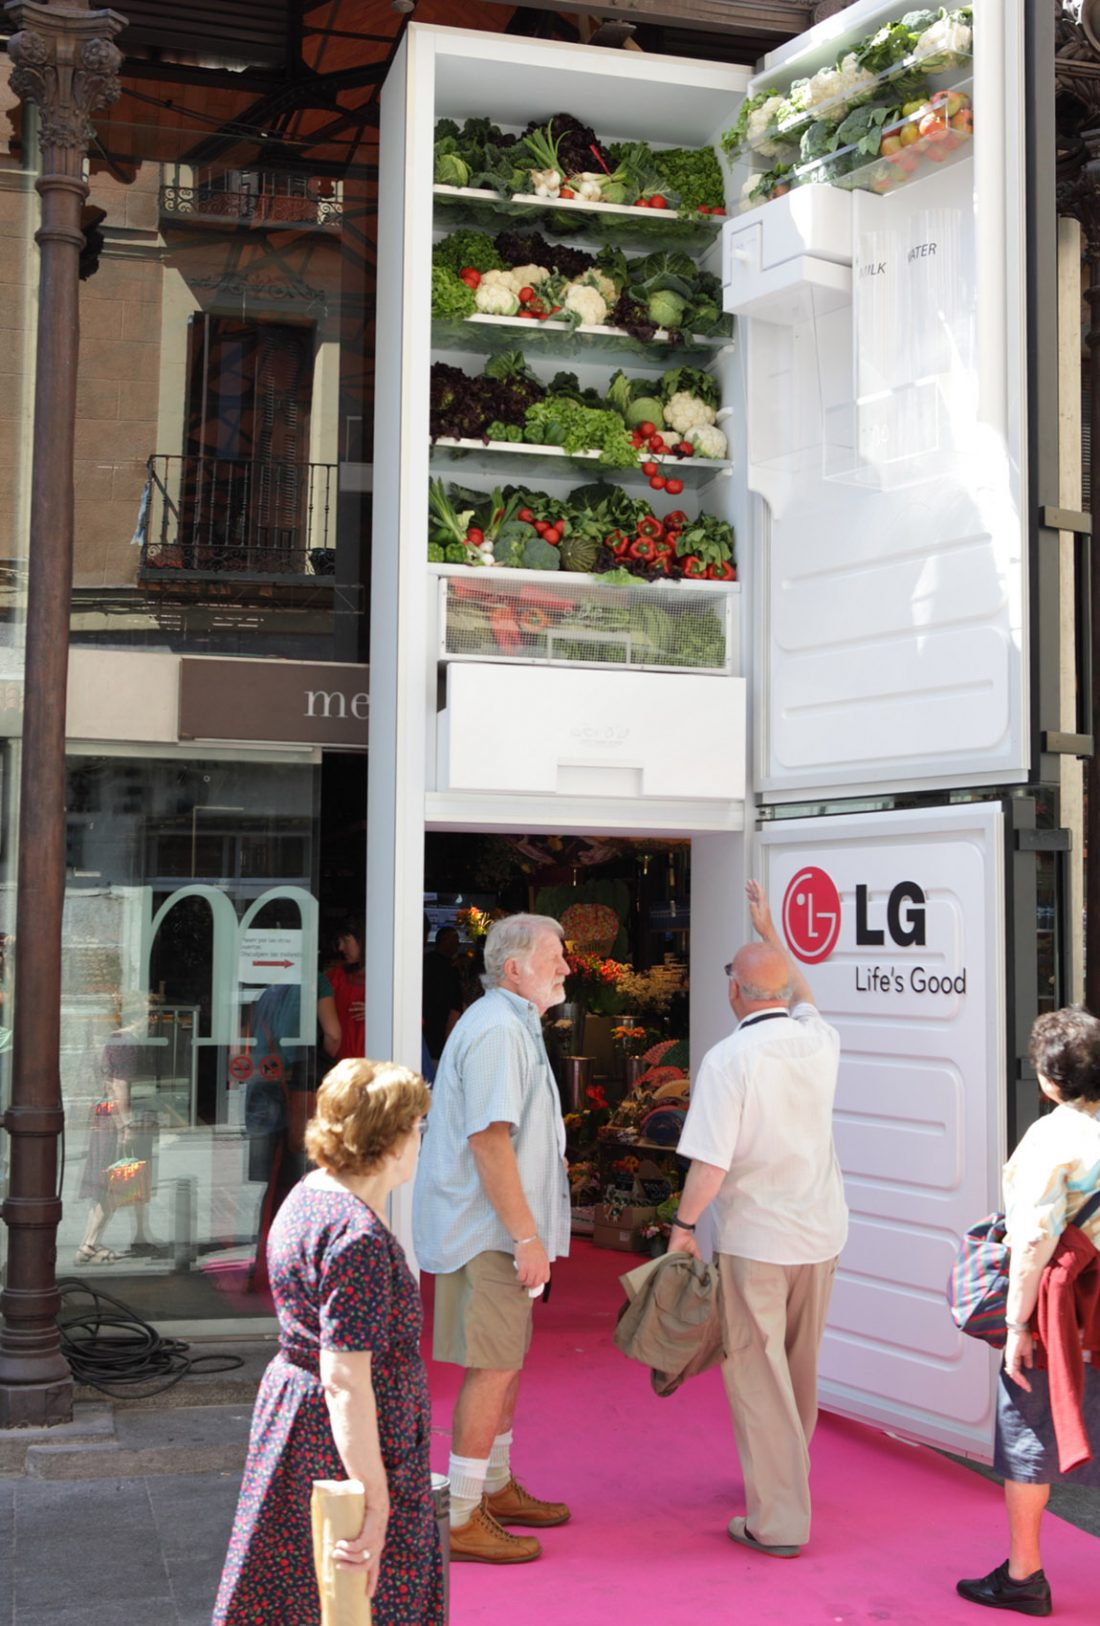 The store front's entrance is modified to resemble a giant version of LG's refrigerator, to the amazement of passersby.